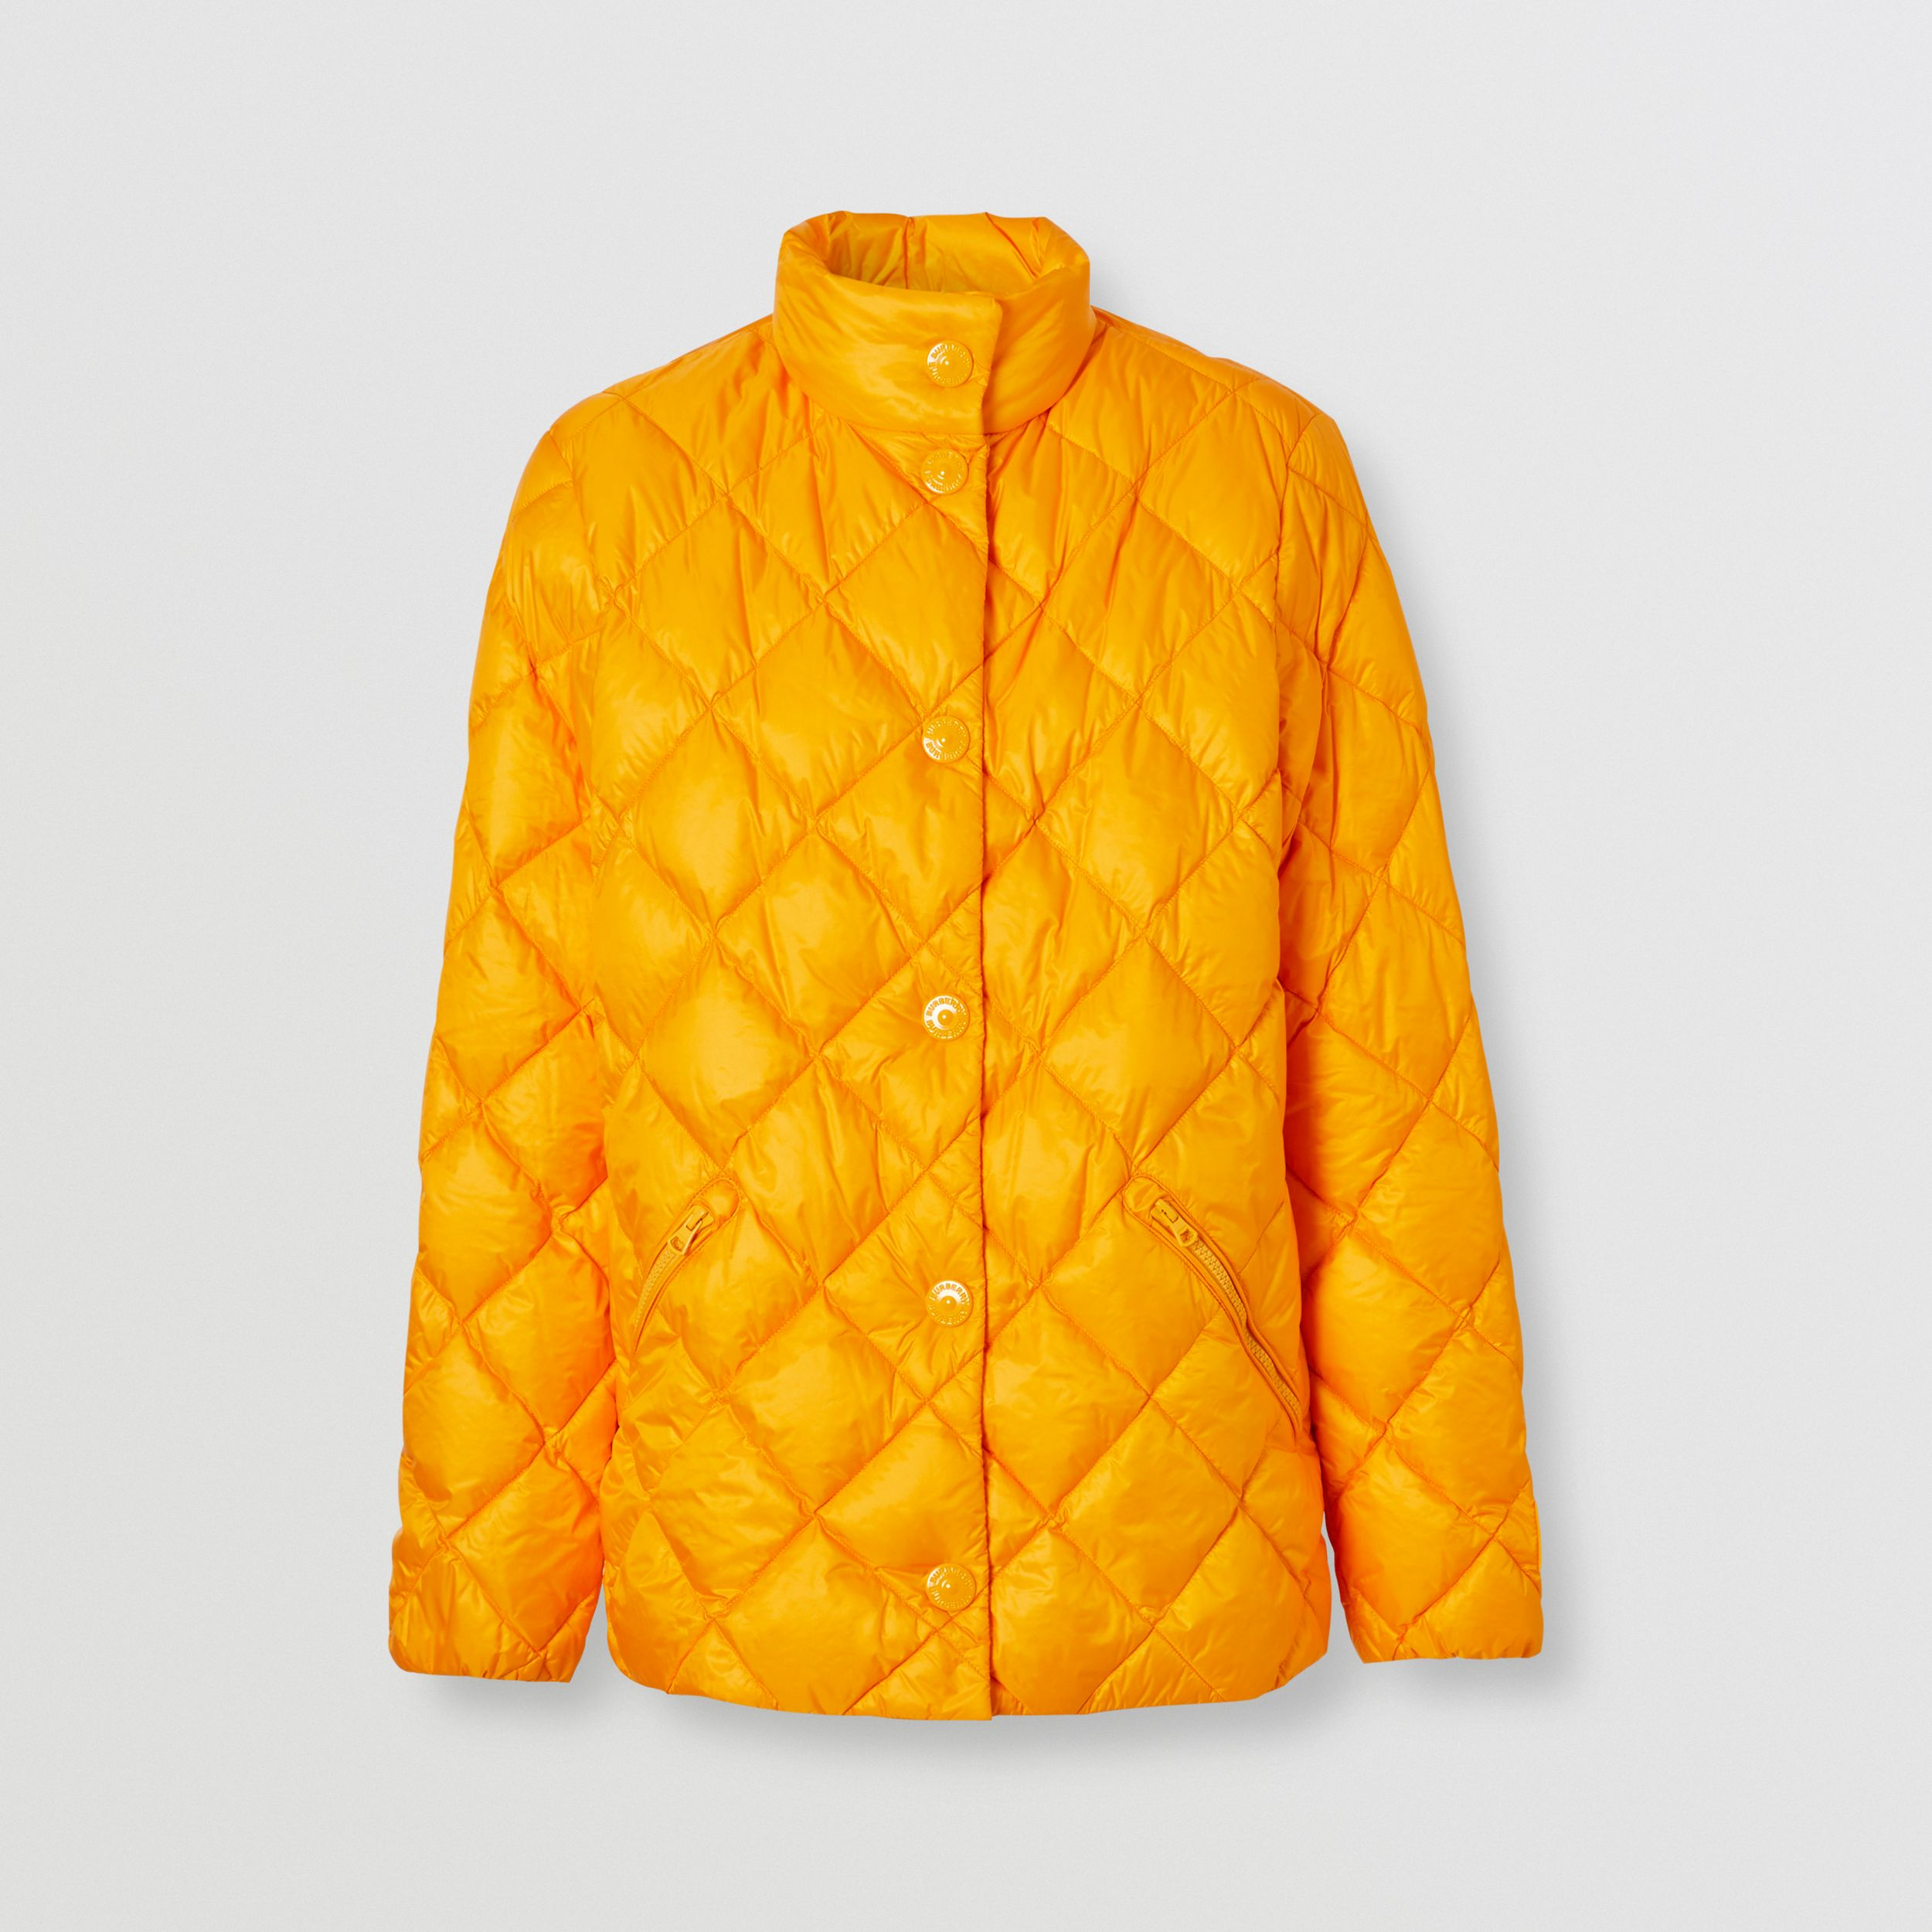 Diamond Quilted Down-filled Jacket in Citrus Orange - Women | Burberry - 4